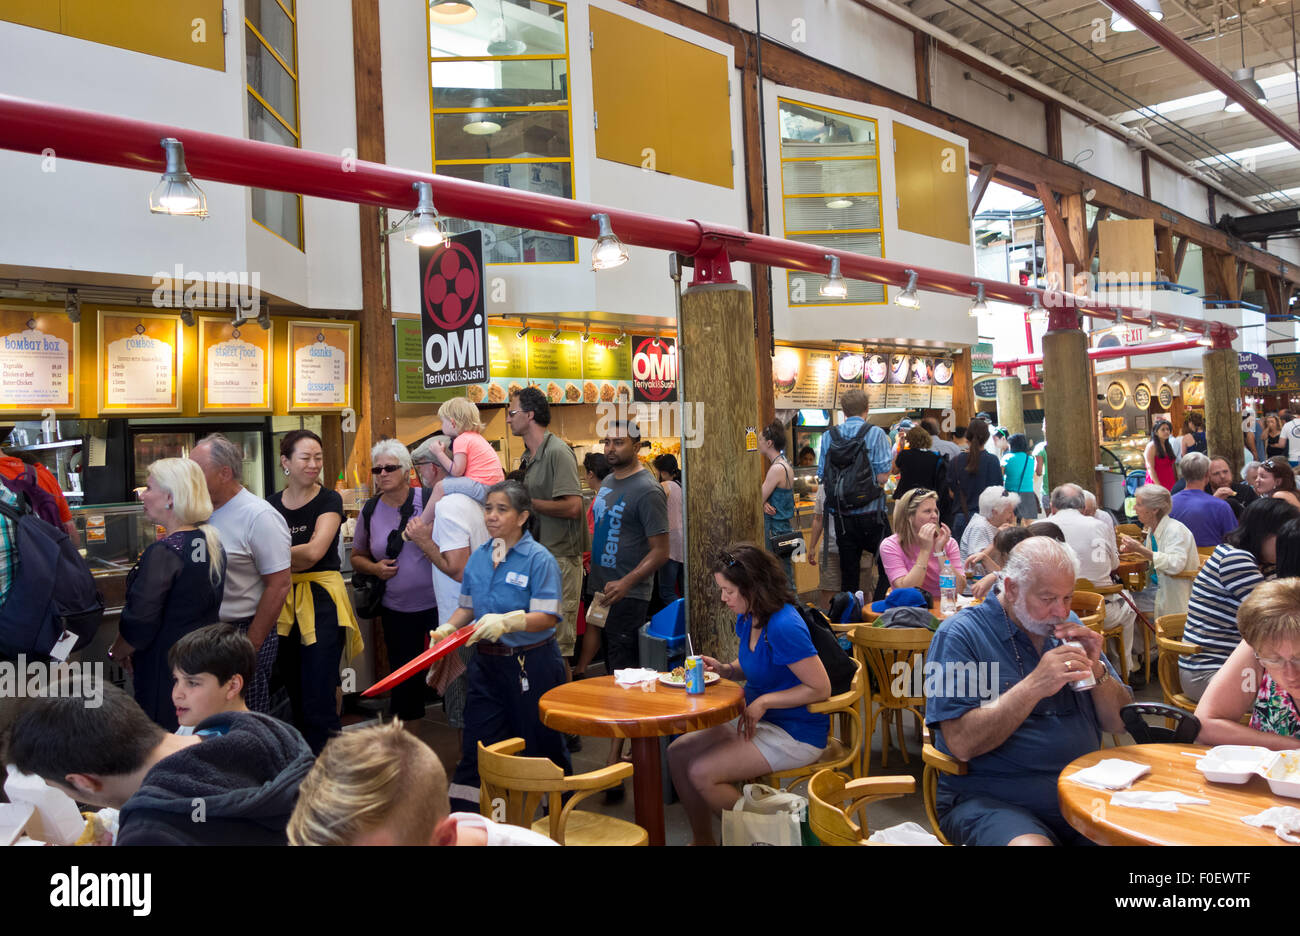 Granville Island Public market food court in Vancouver, BC, Canada. People eating from local restaurants. - Stock Image